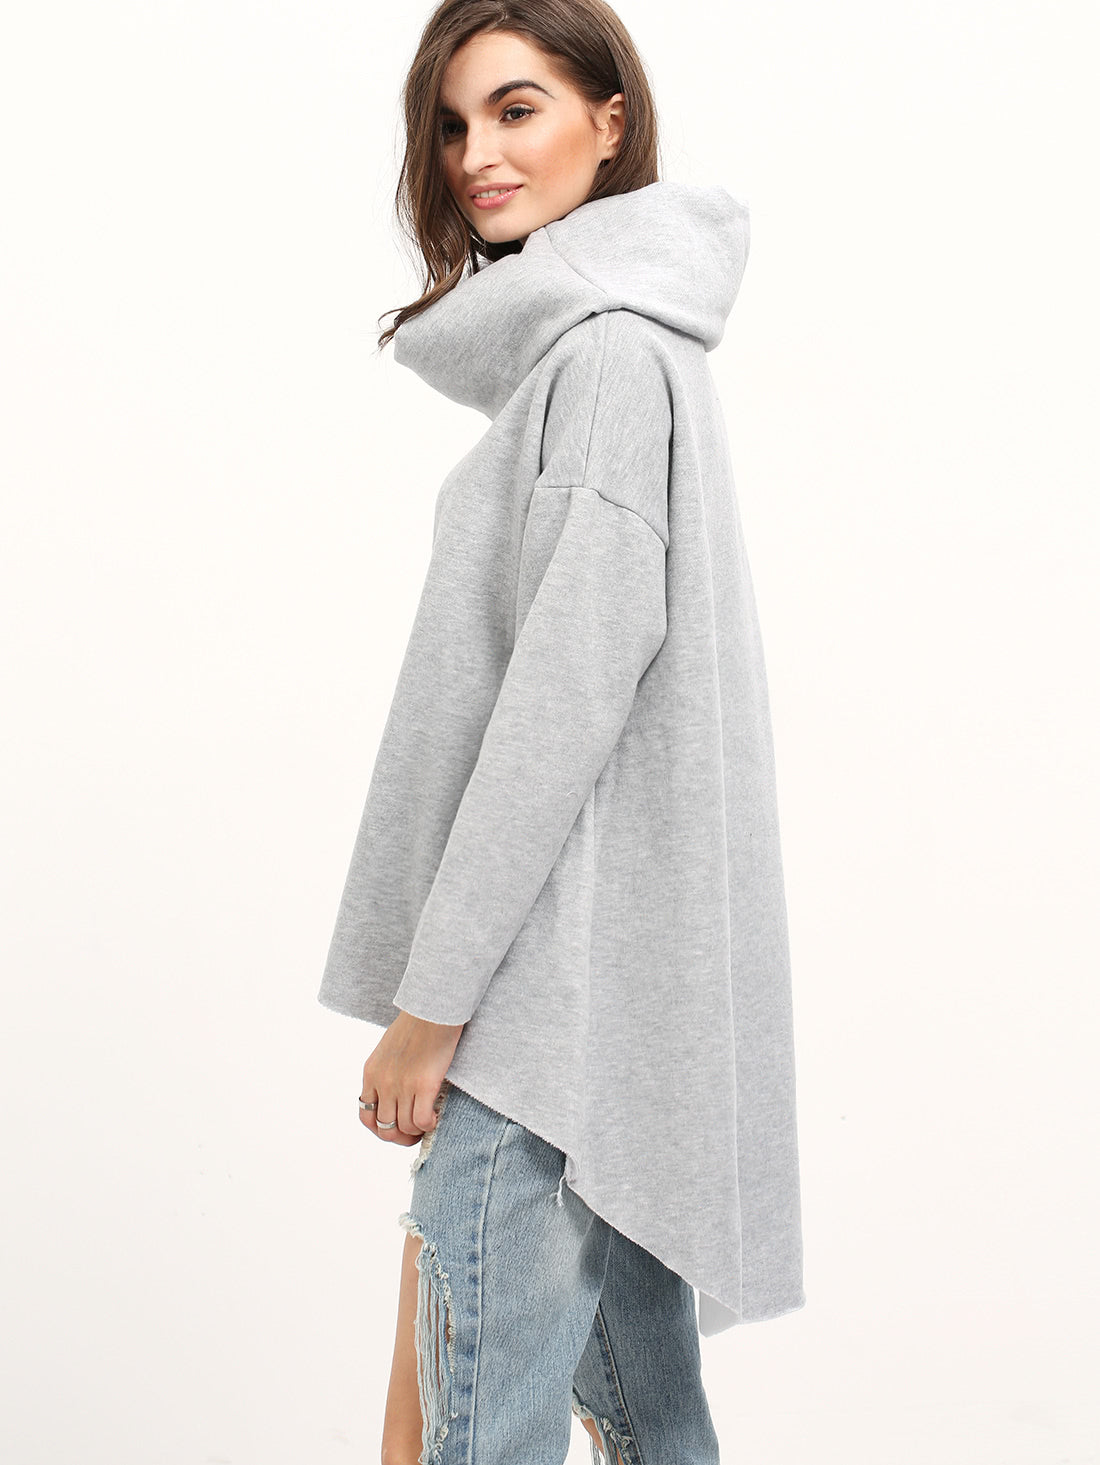 Cowl Neck Loose Womens Sweatshirt